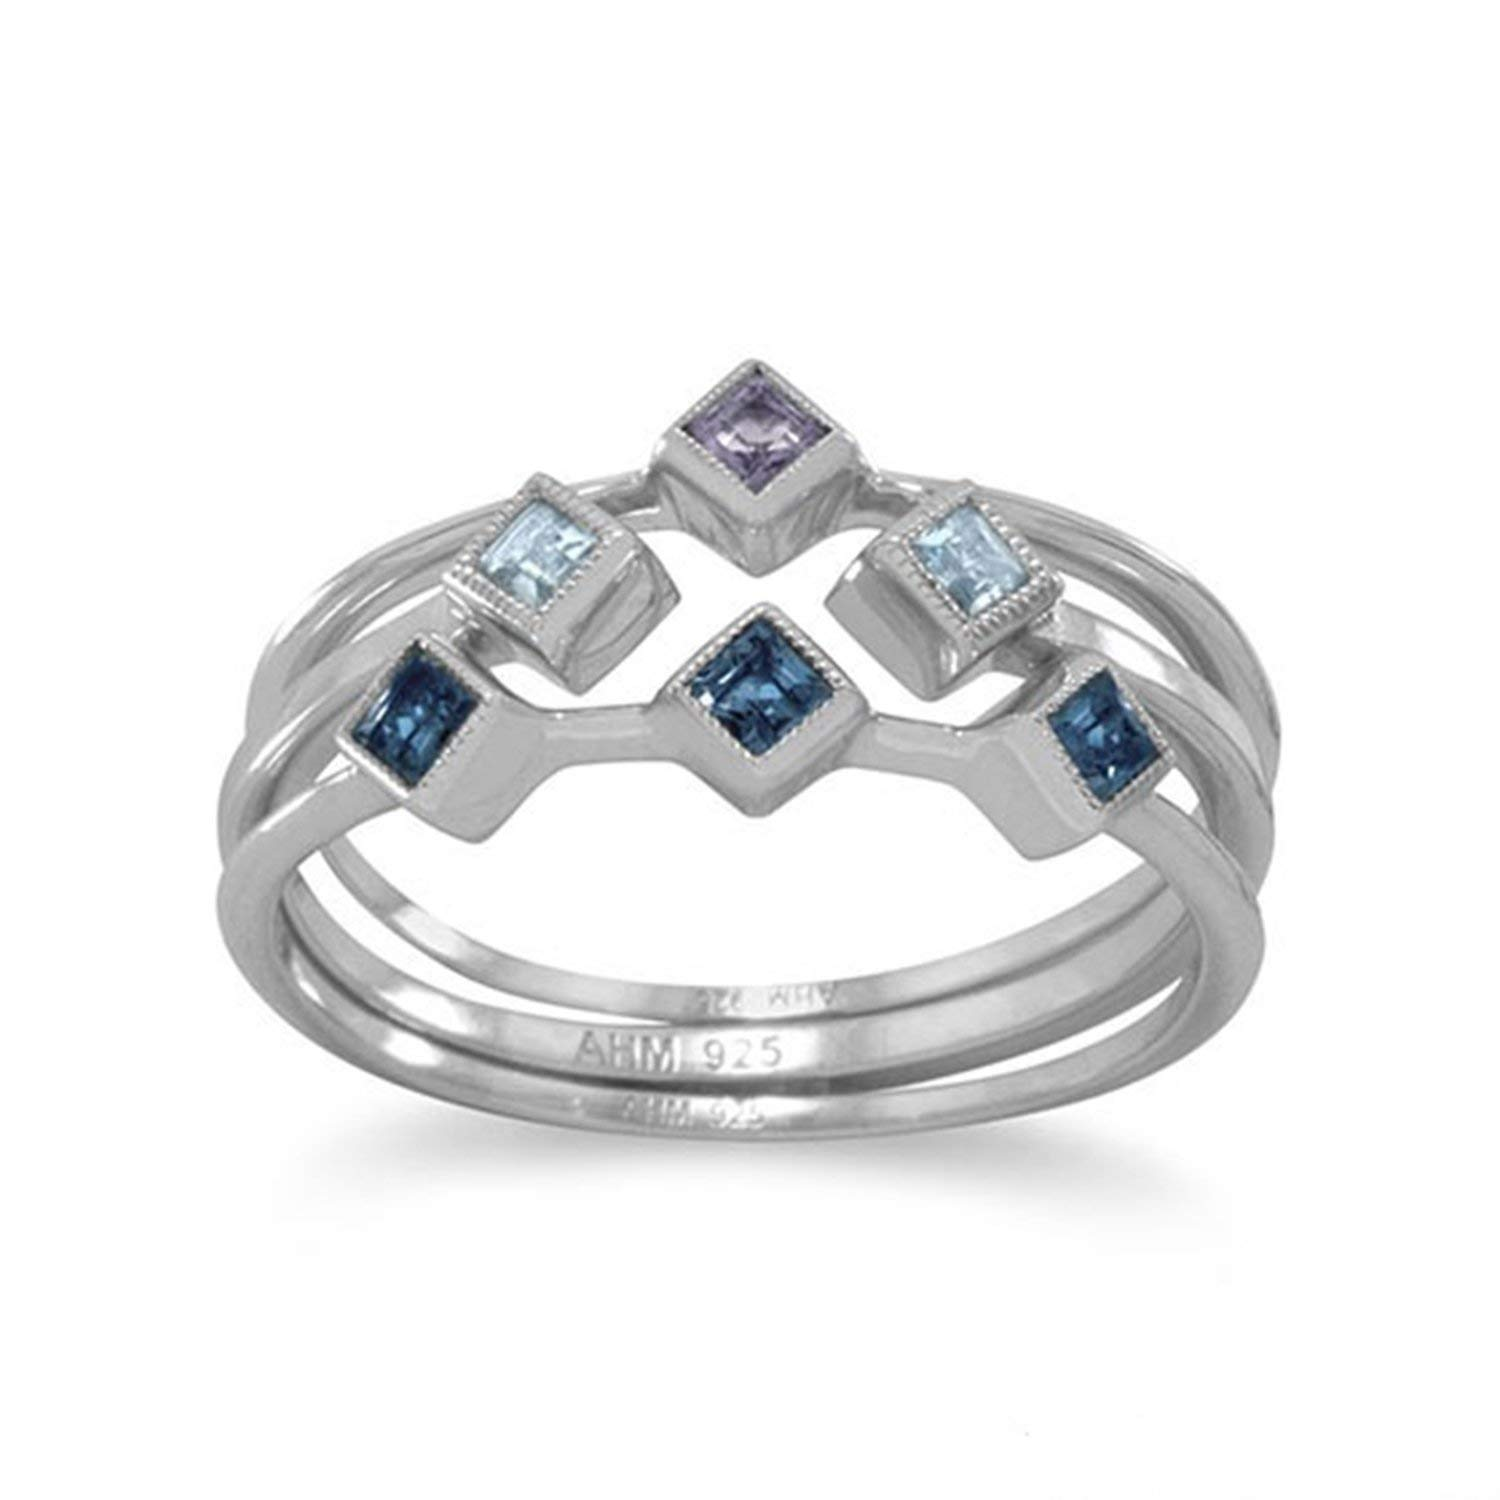 Solitaire Jeweled Rings 925 Sterling Silver Liara Polished Nickel Free